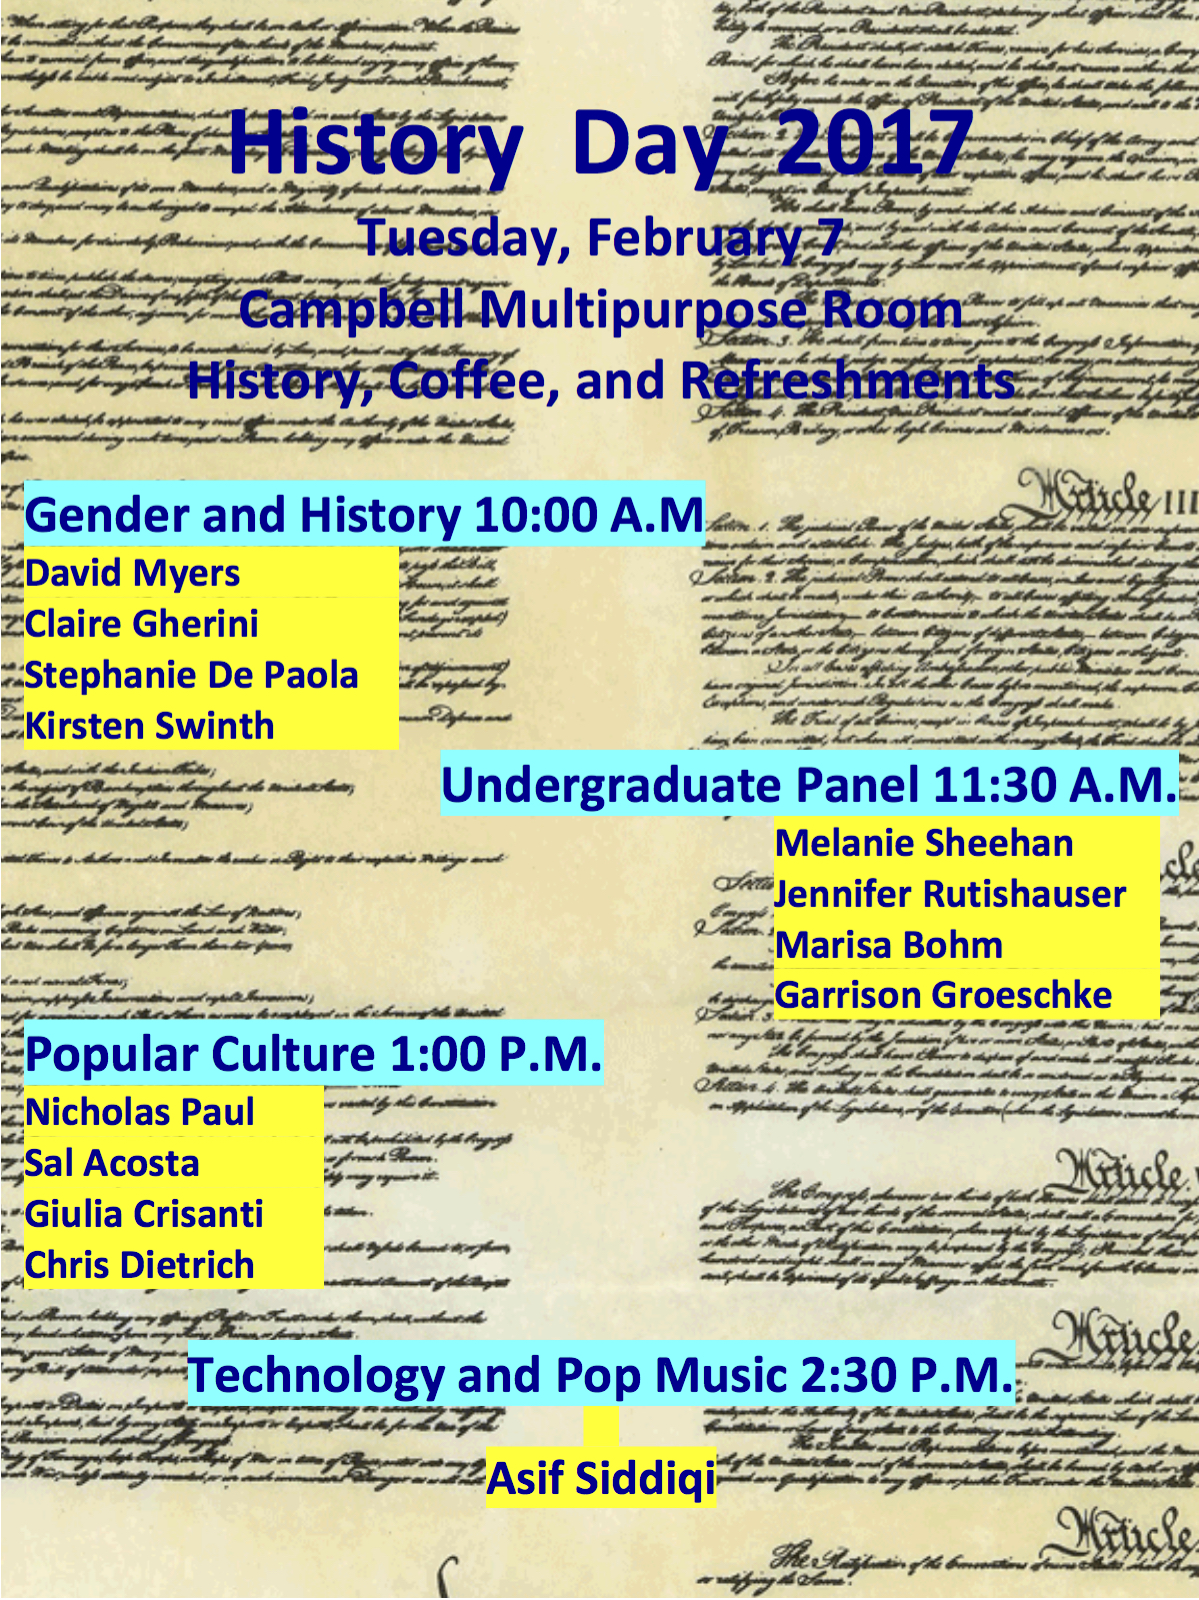 Join Us Tomorrow For History Day!